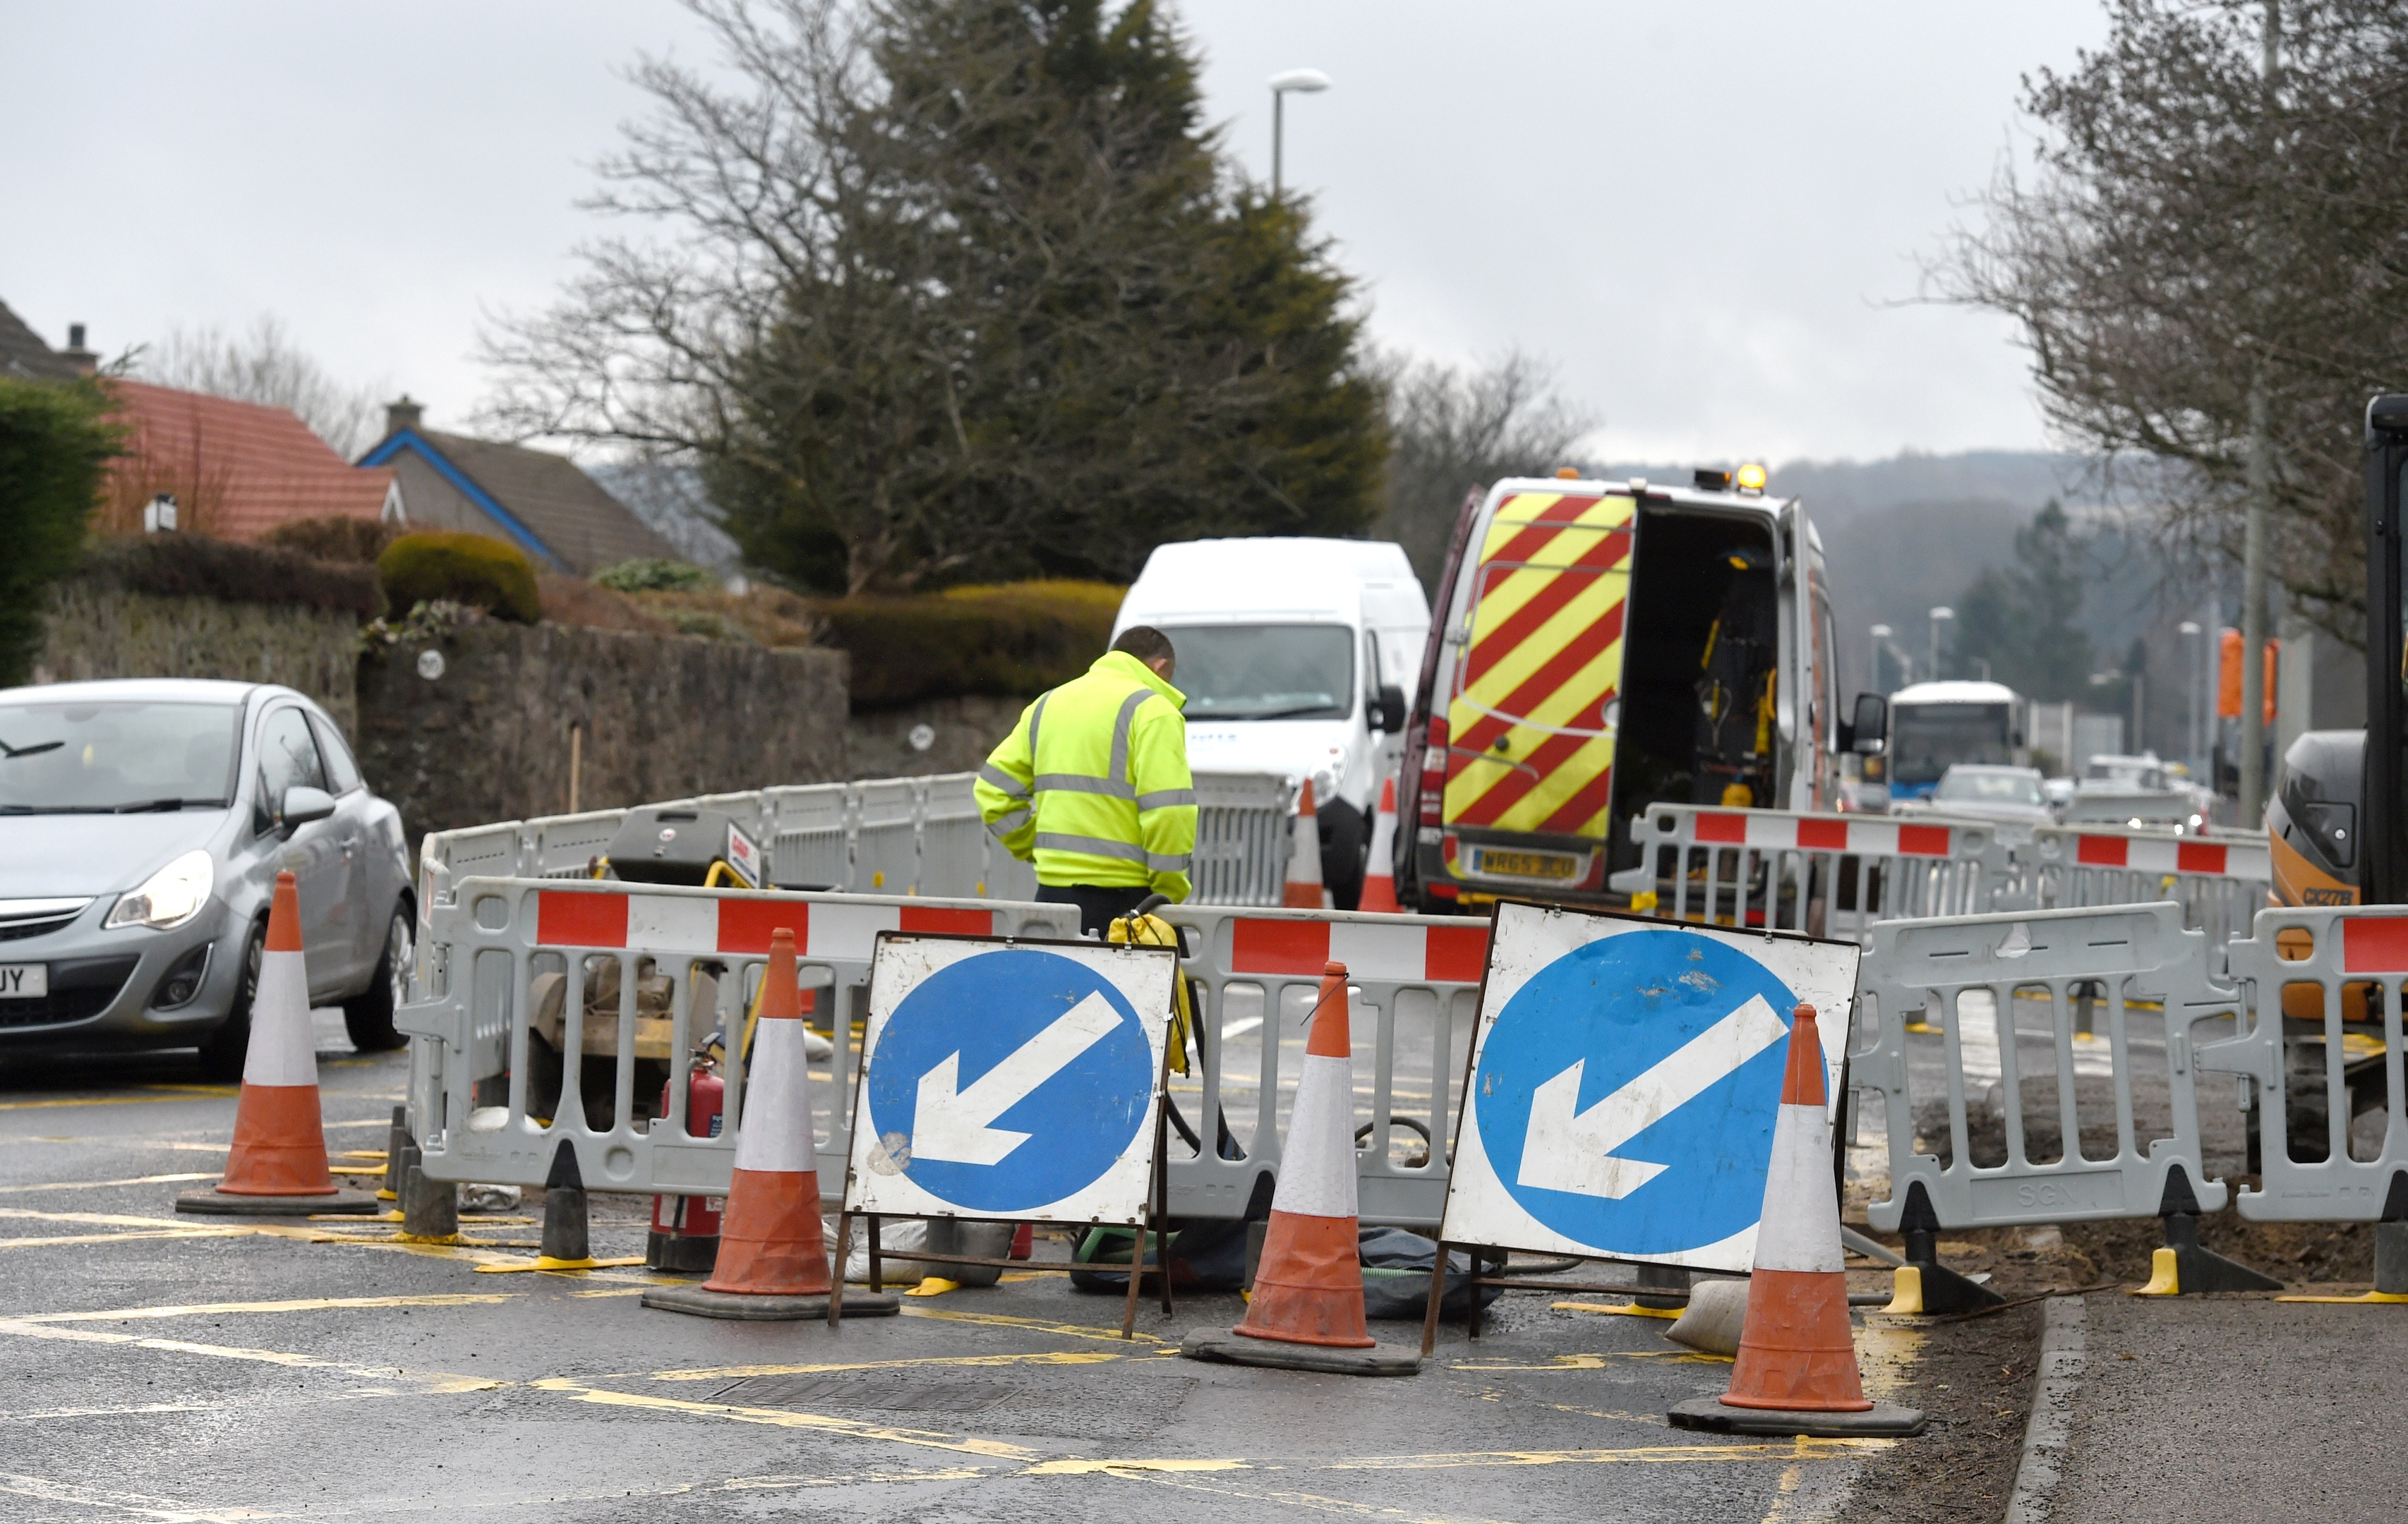 Work has started on Old Perth Road, Inverness to replace gas piping and will mean considerable traffic conjestion for four weeks. Picture by Sandy McCook.